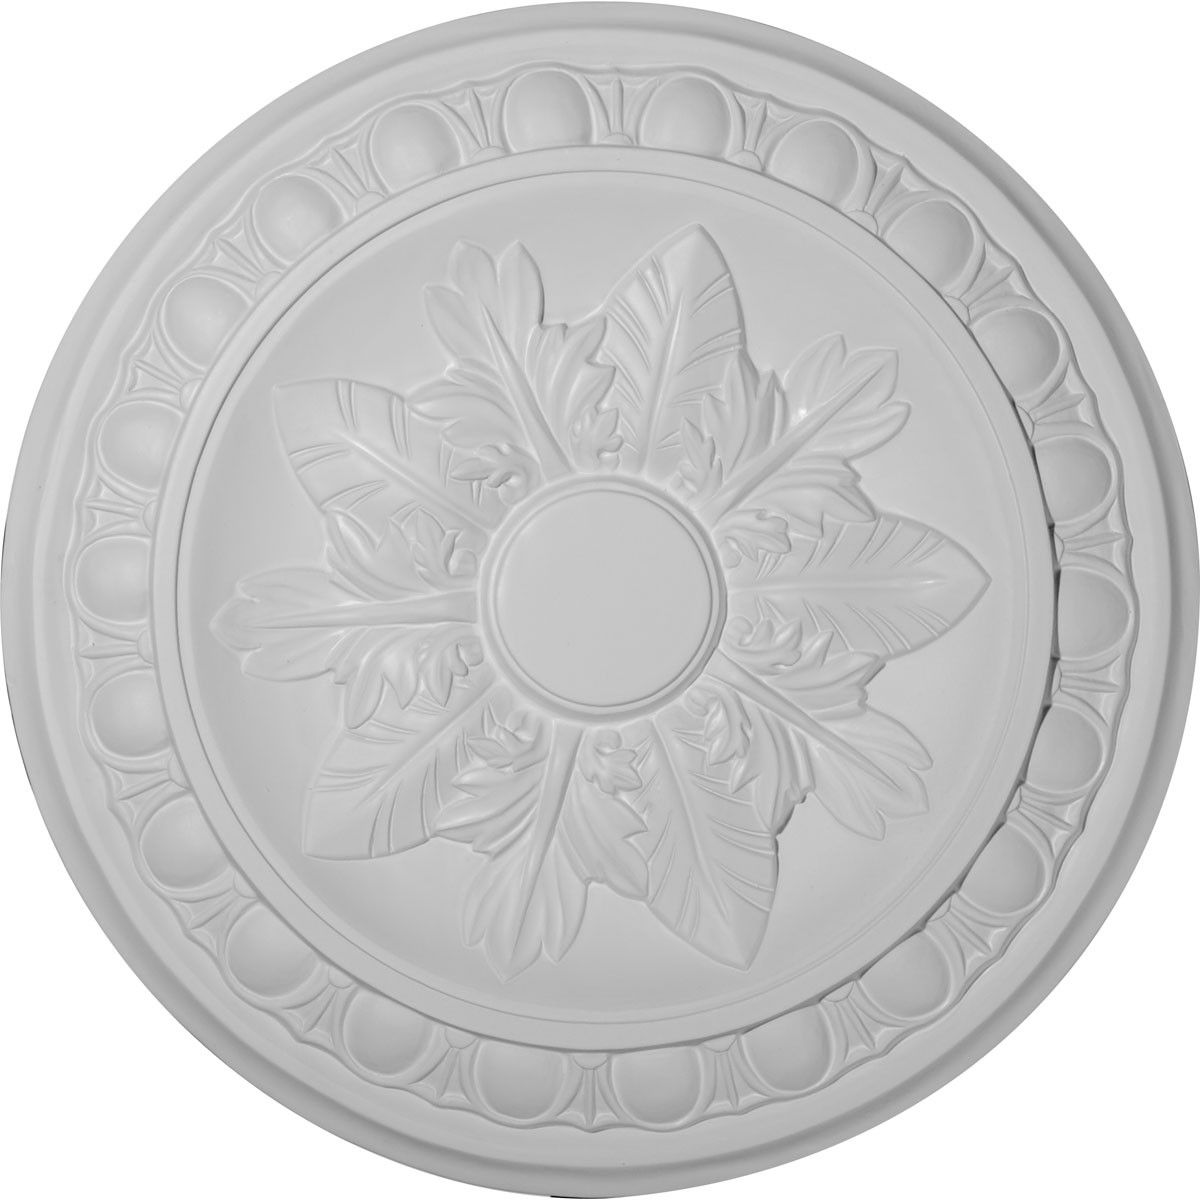 "EM-CM17EX - 17 3/4""OD x 1 1/8""P Exeter Ceiling Medallion (Fits Canopies up to 3 1/8"")"